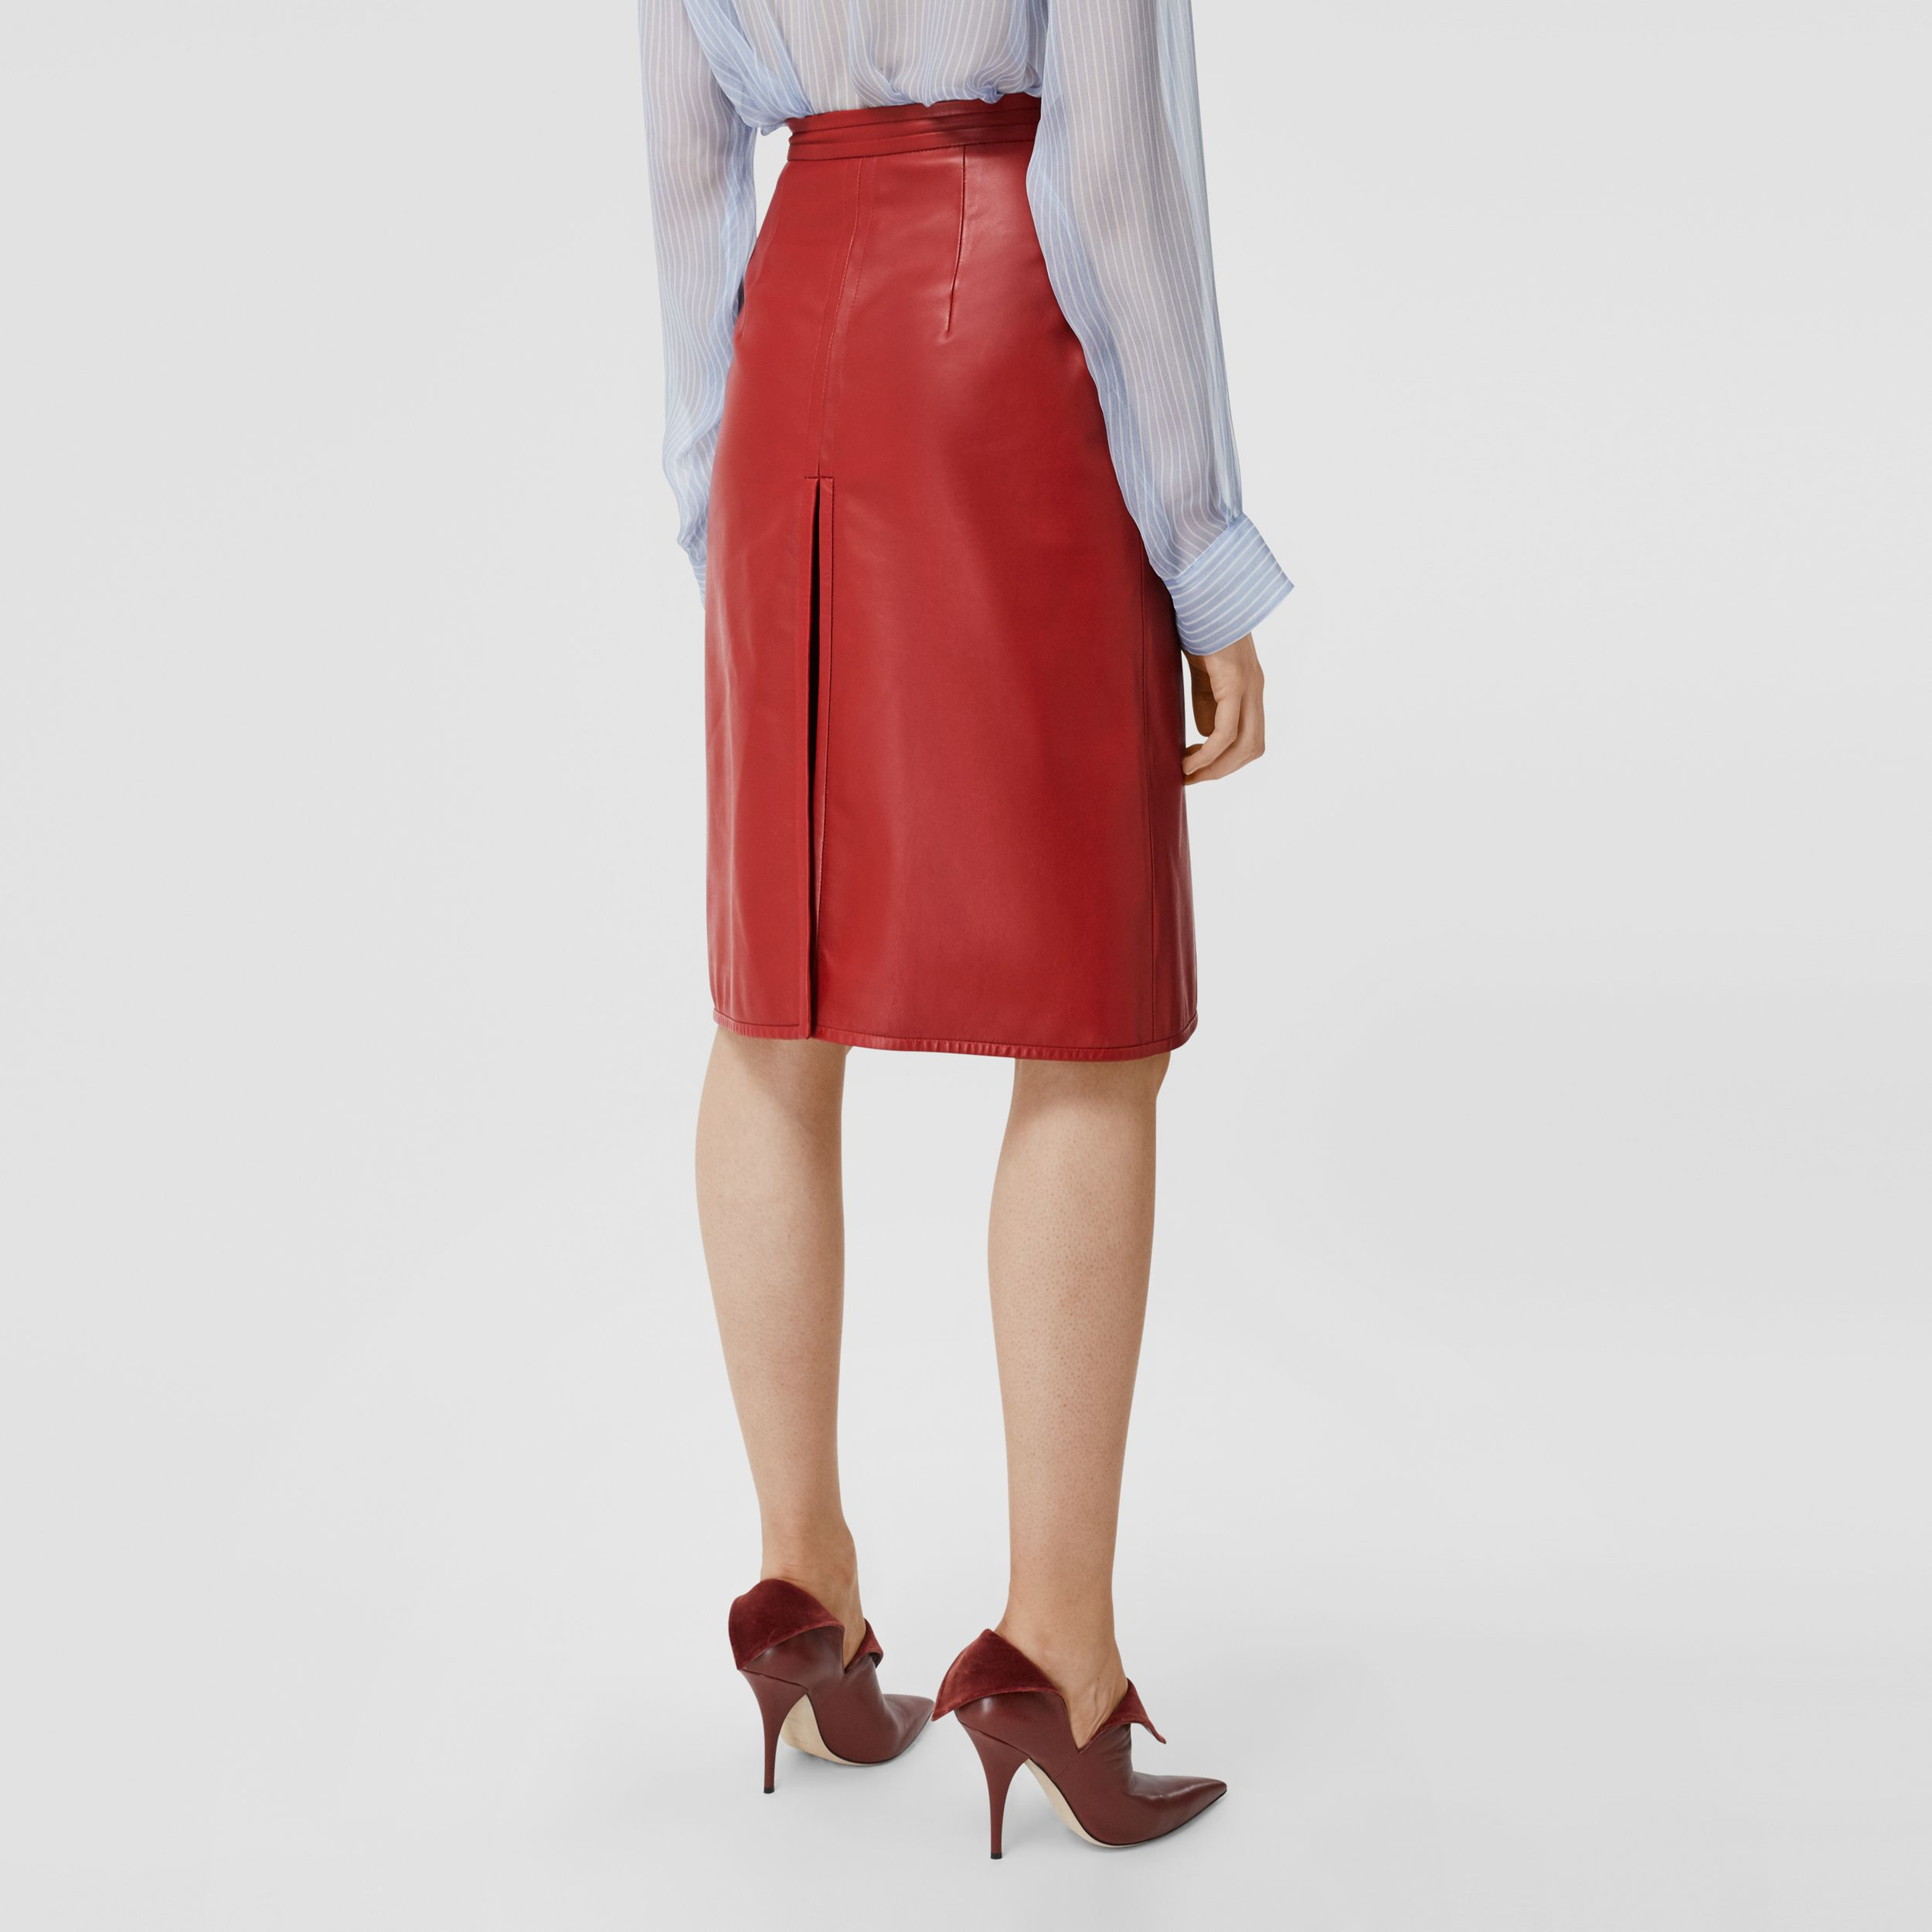 Box-pleat Detail Leather A-line Skirt in Dark Carmine - Women | Burberry United States - 3